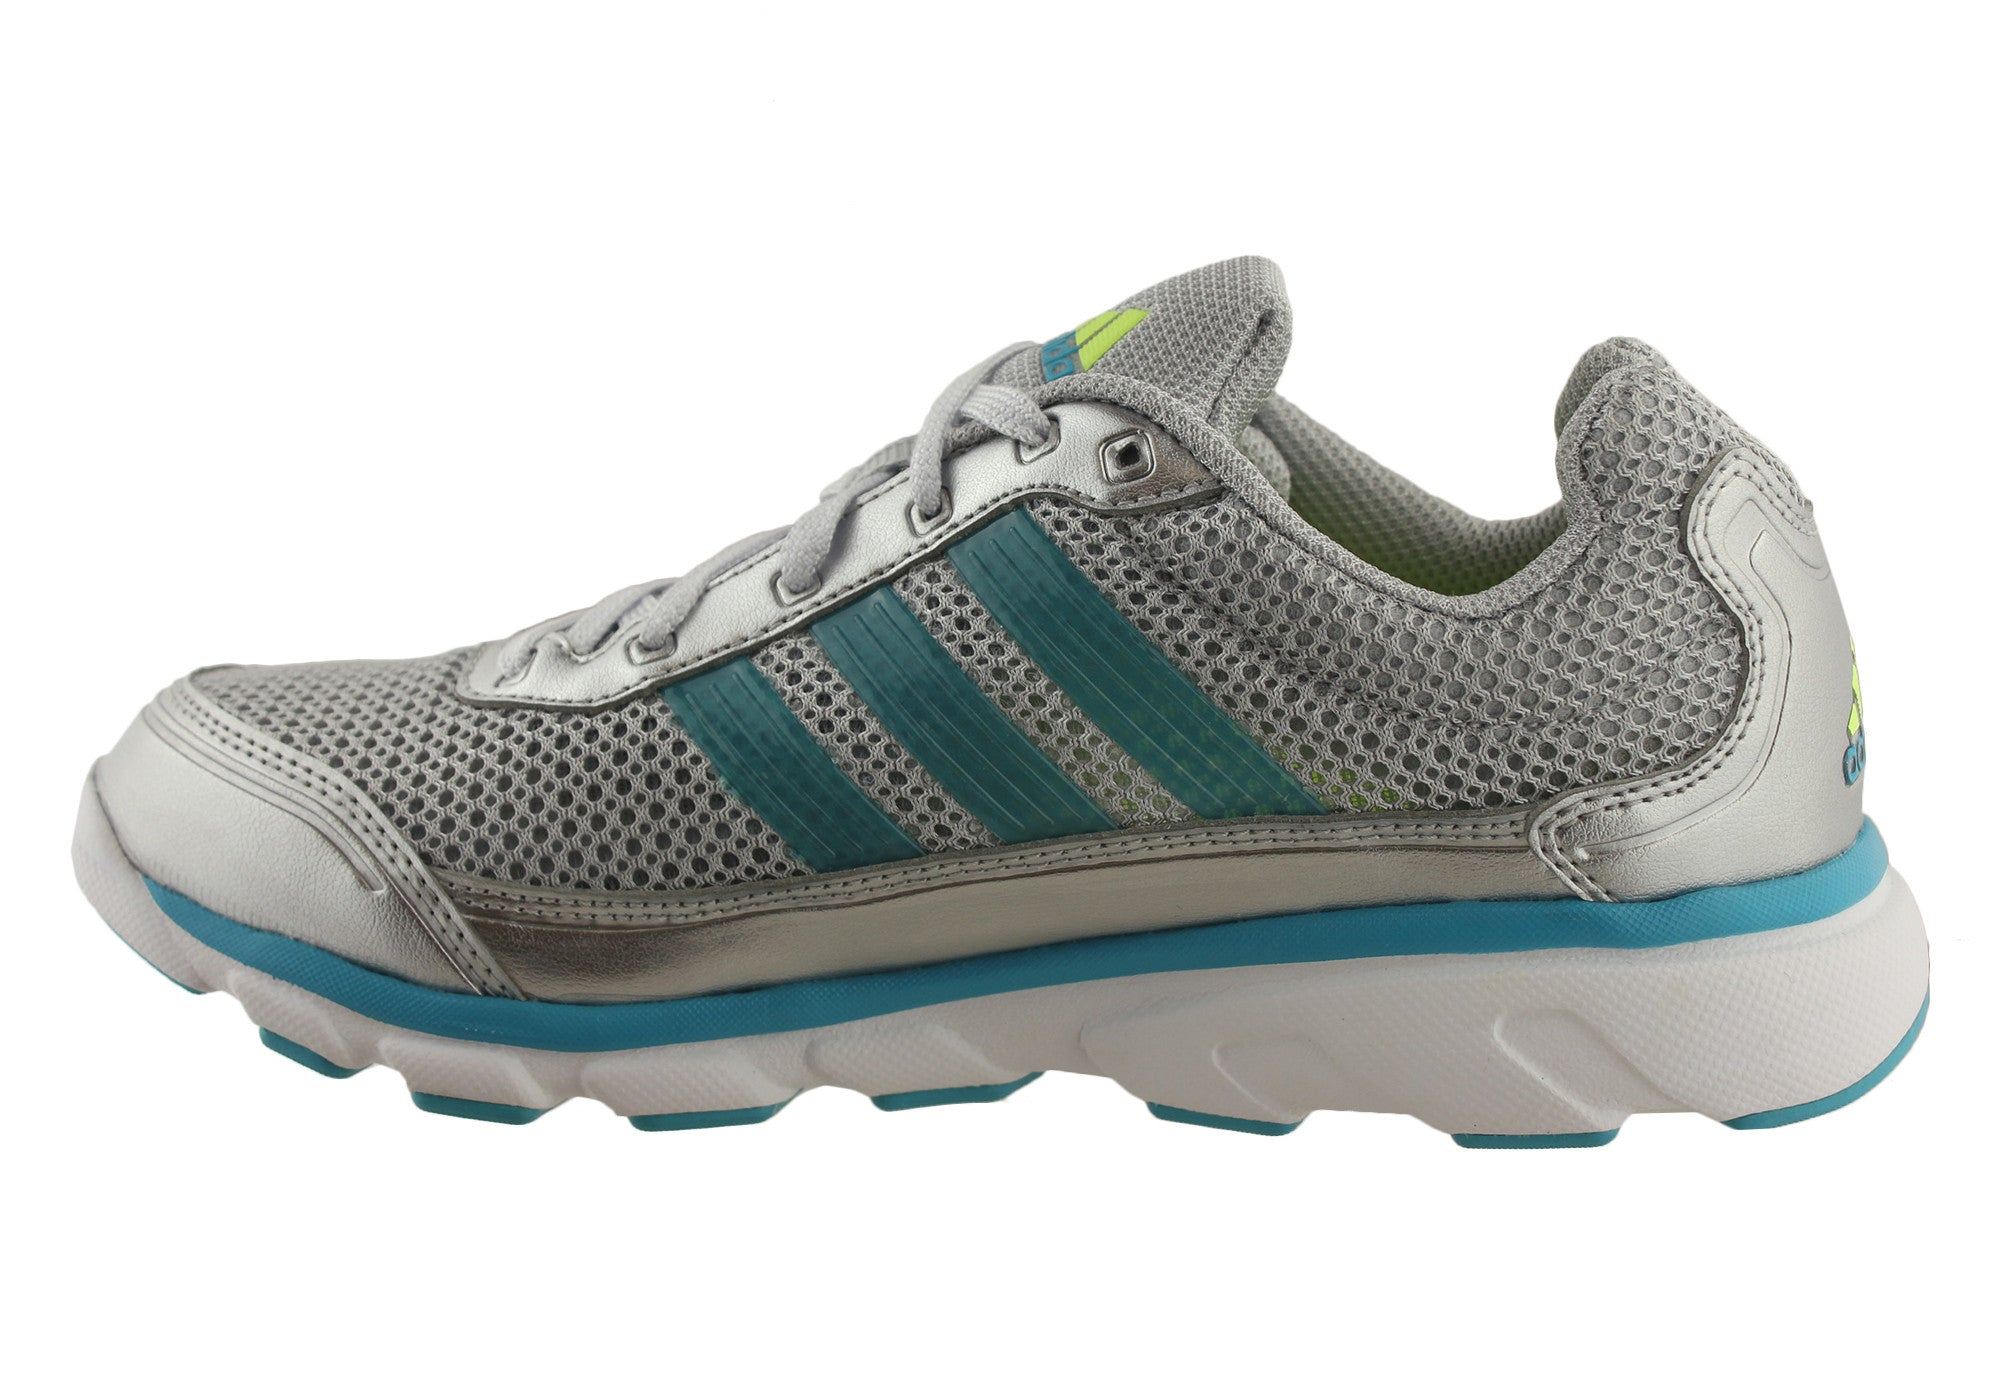 Adidas Womens Jett W Womens Light Weight Sport Shoes